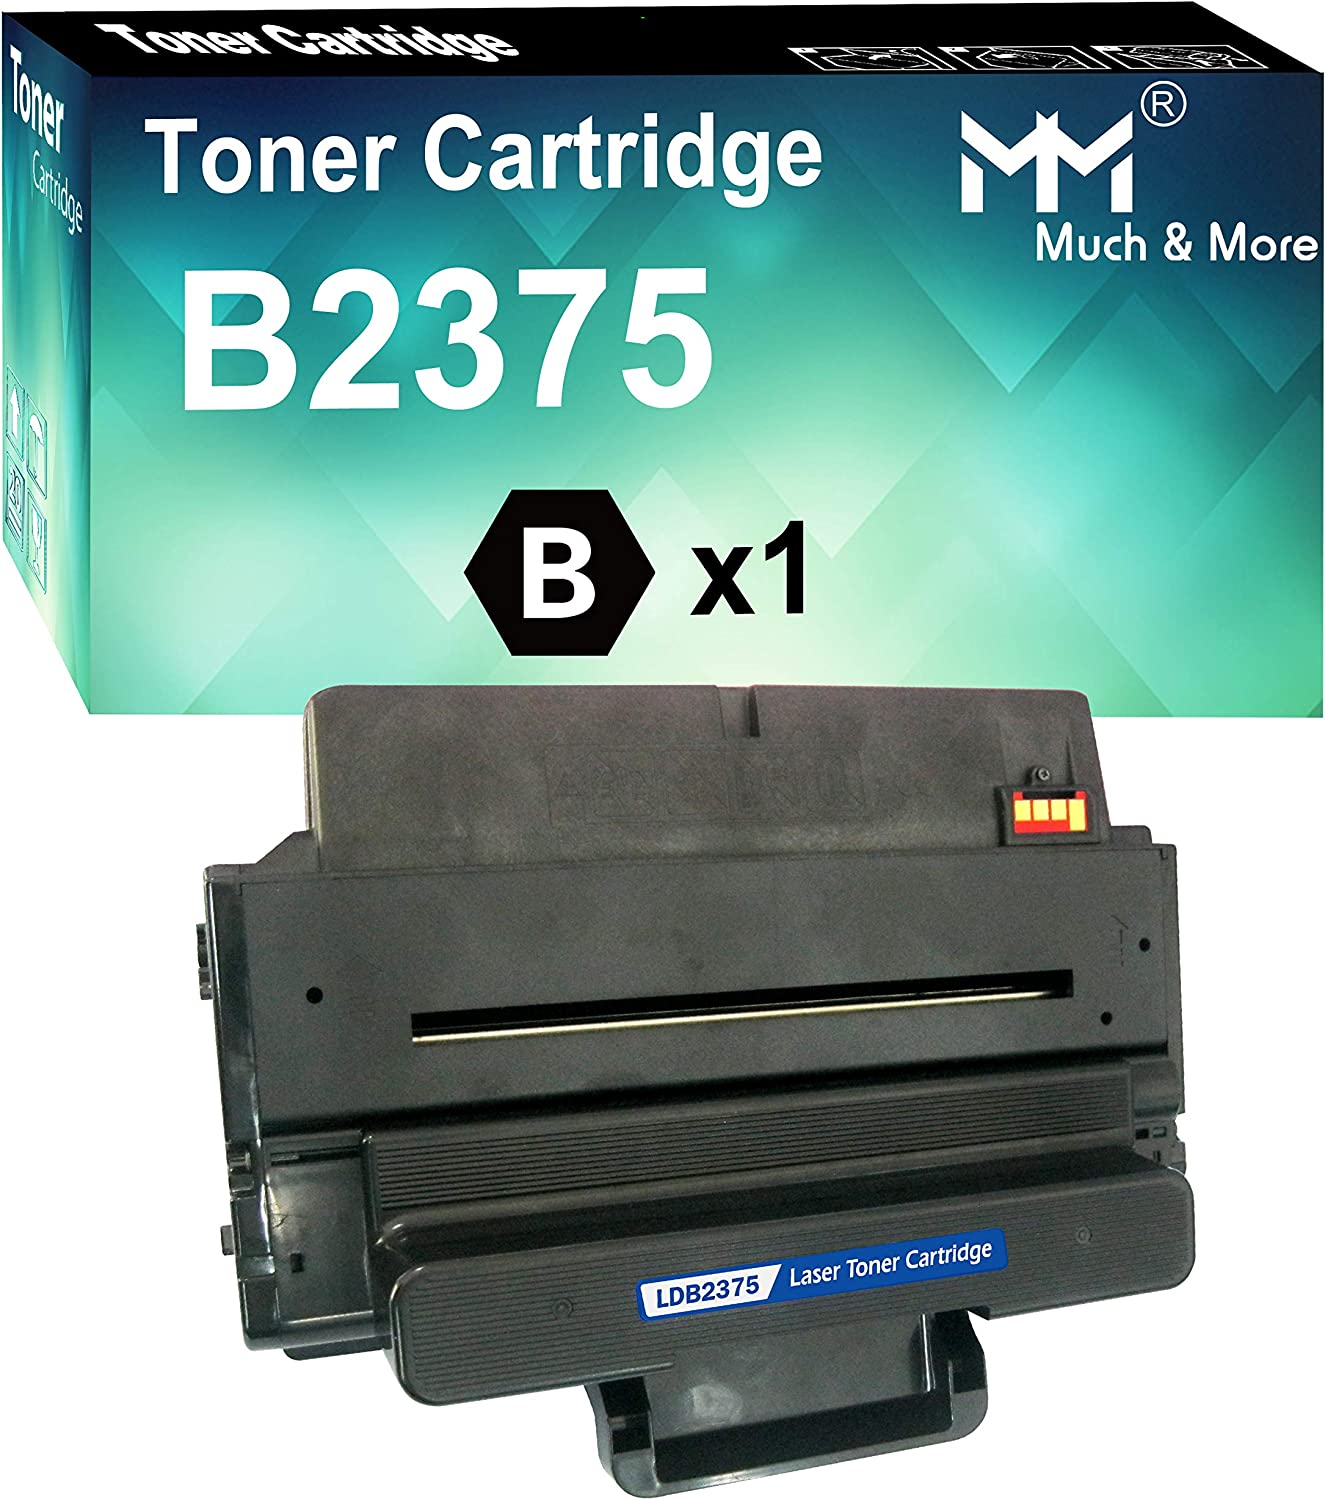 MM MUCH & MORE Compatible Toner Cartridge Replacement for Dell C7D6F 593-BBBJ 593-BBBI 8PTH4 B2375dnf B2375 B2375dn B2375dnf B2375dfw (1-Pack, Black, High Yield)